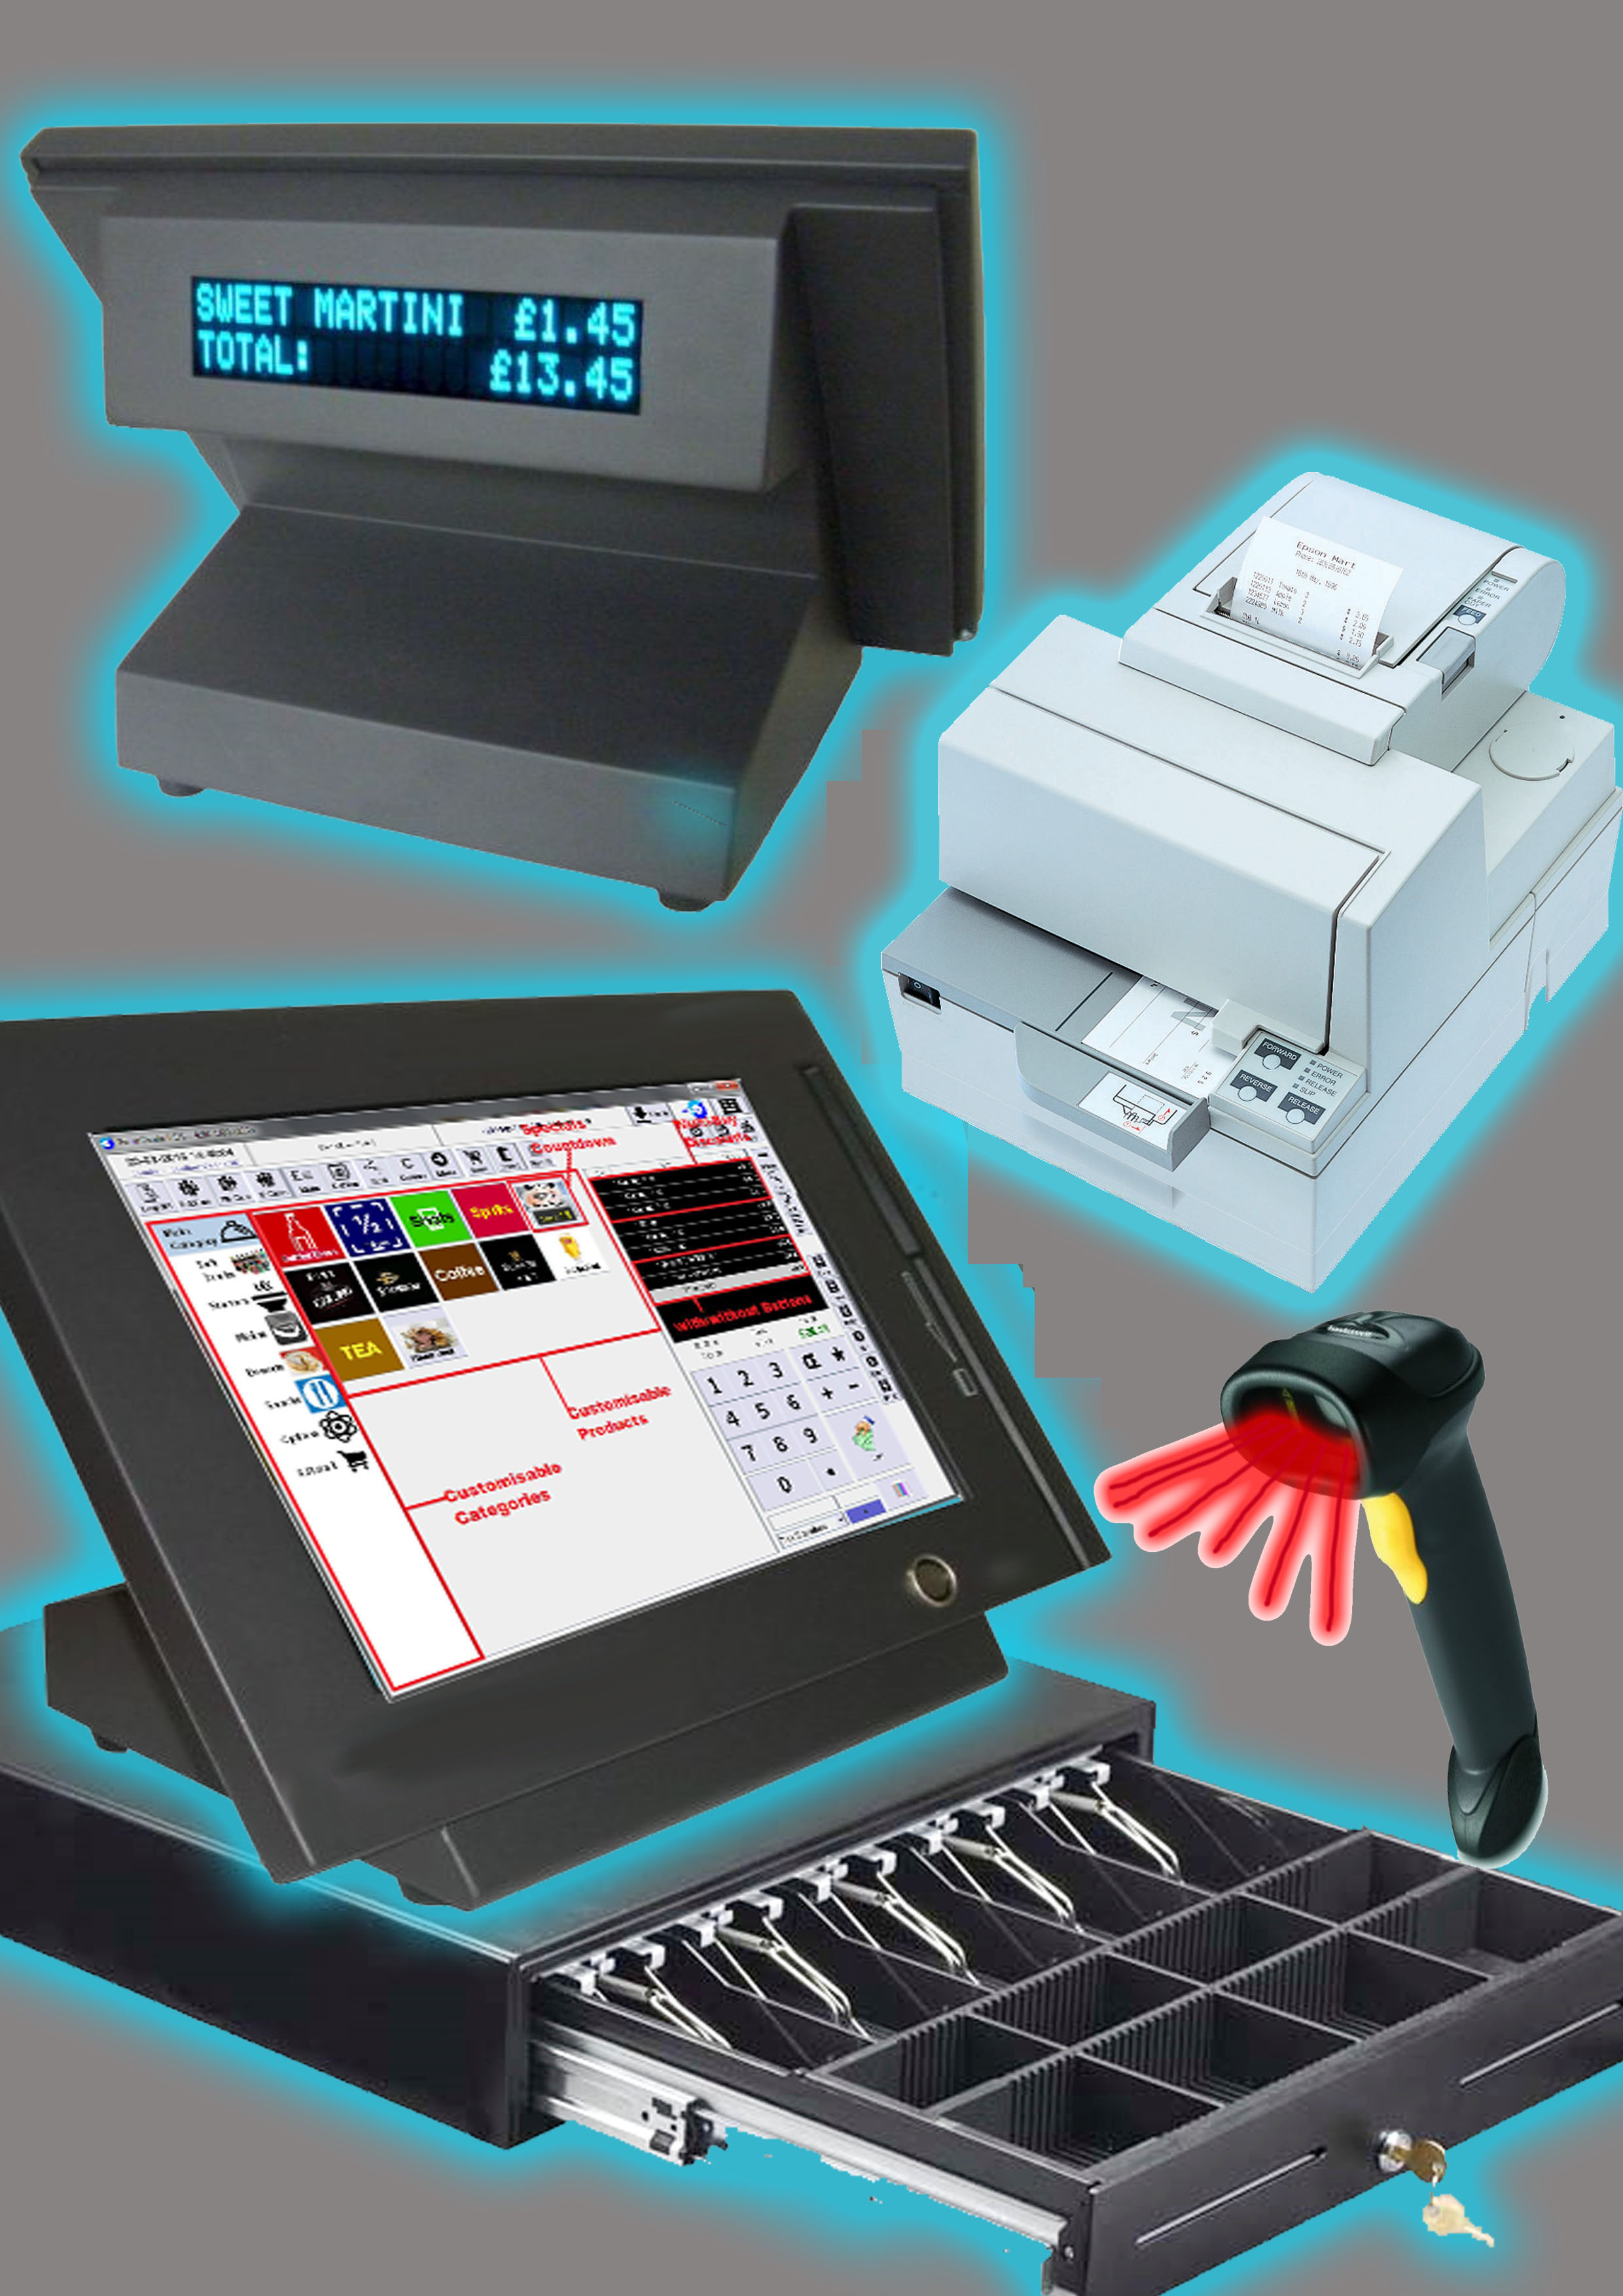 EPOS Till System everything you need for convenience store or sh